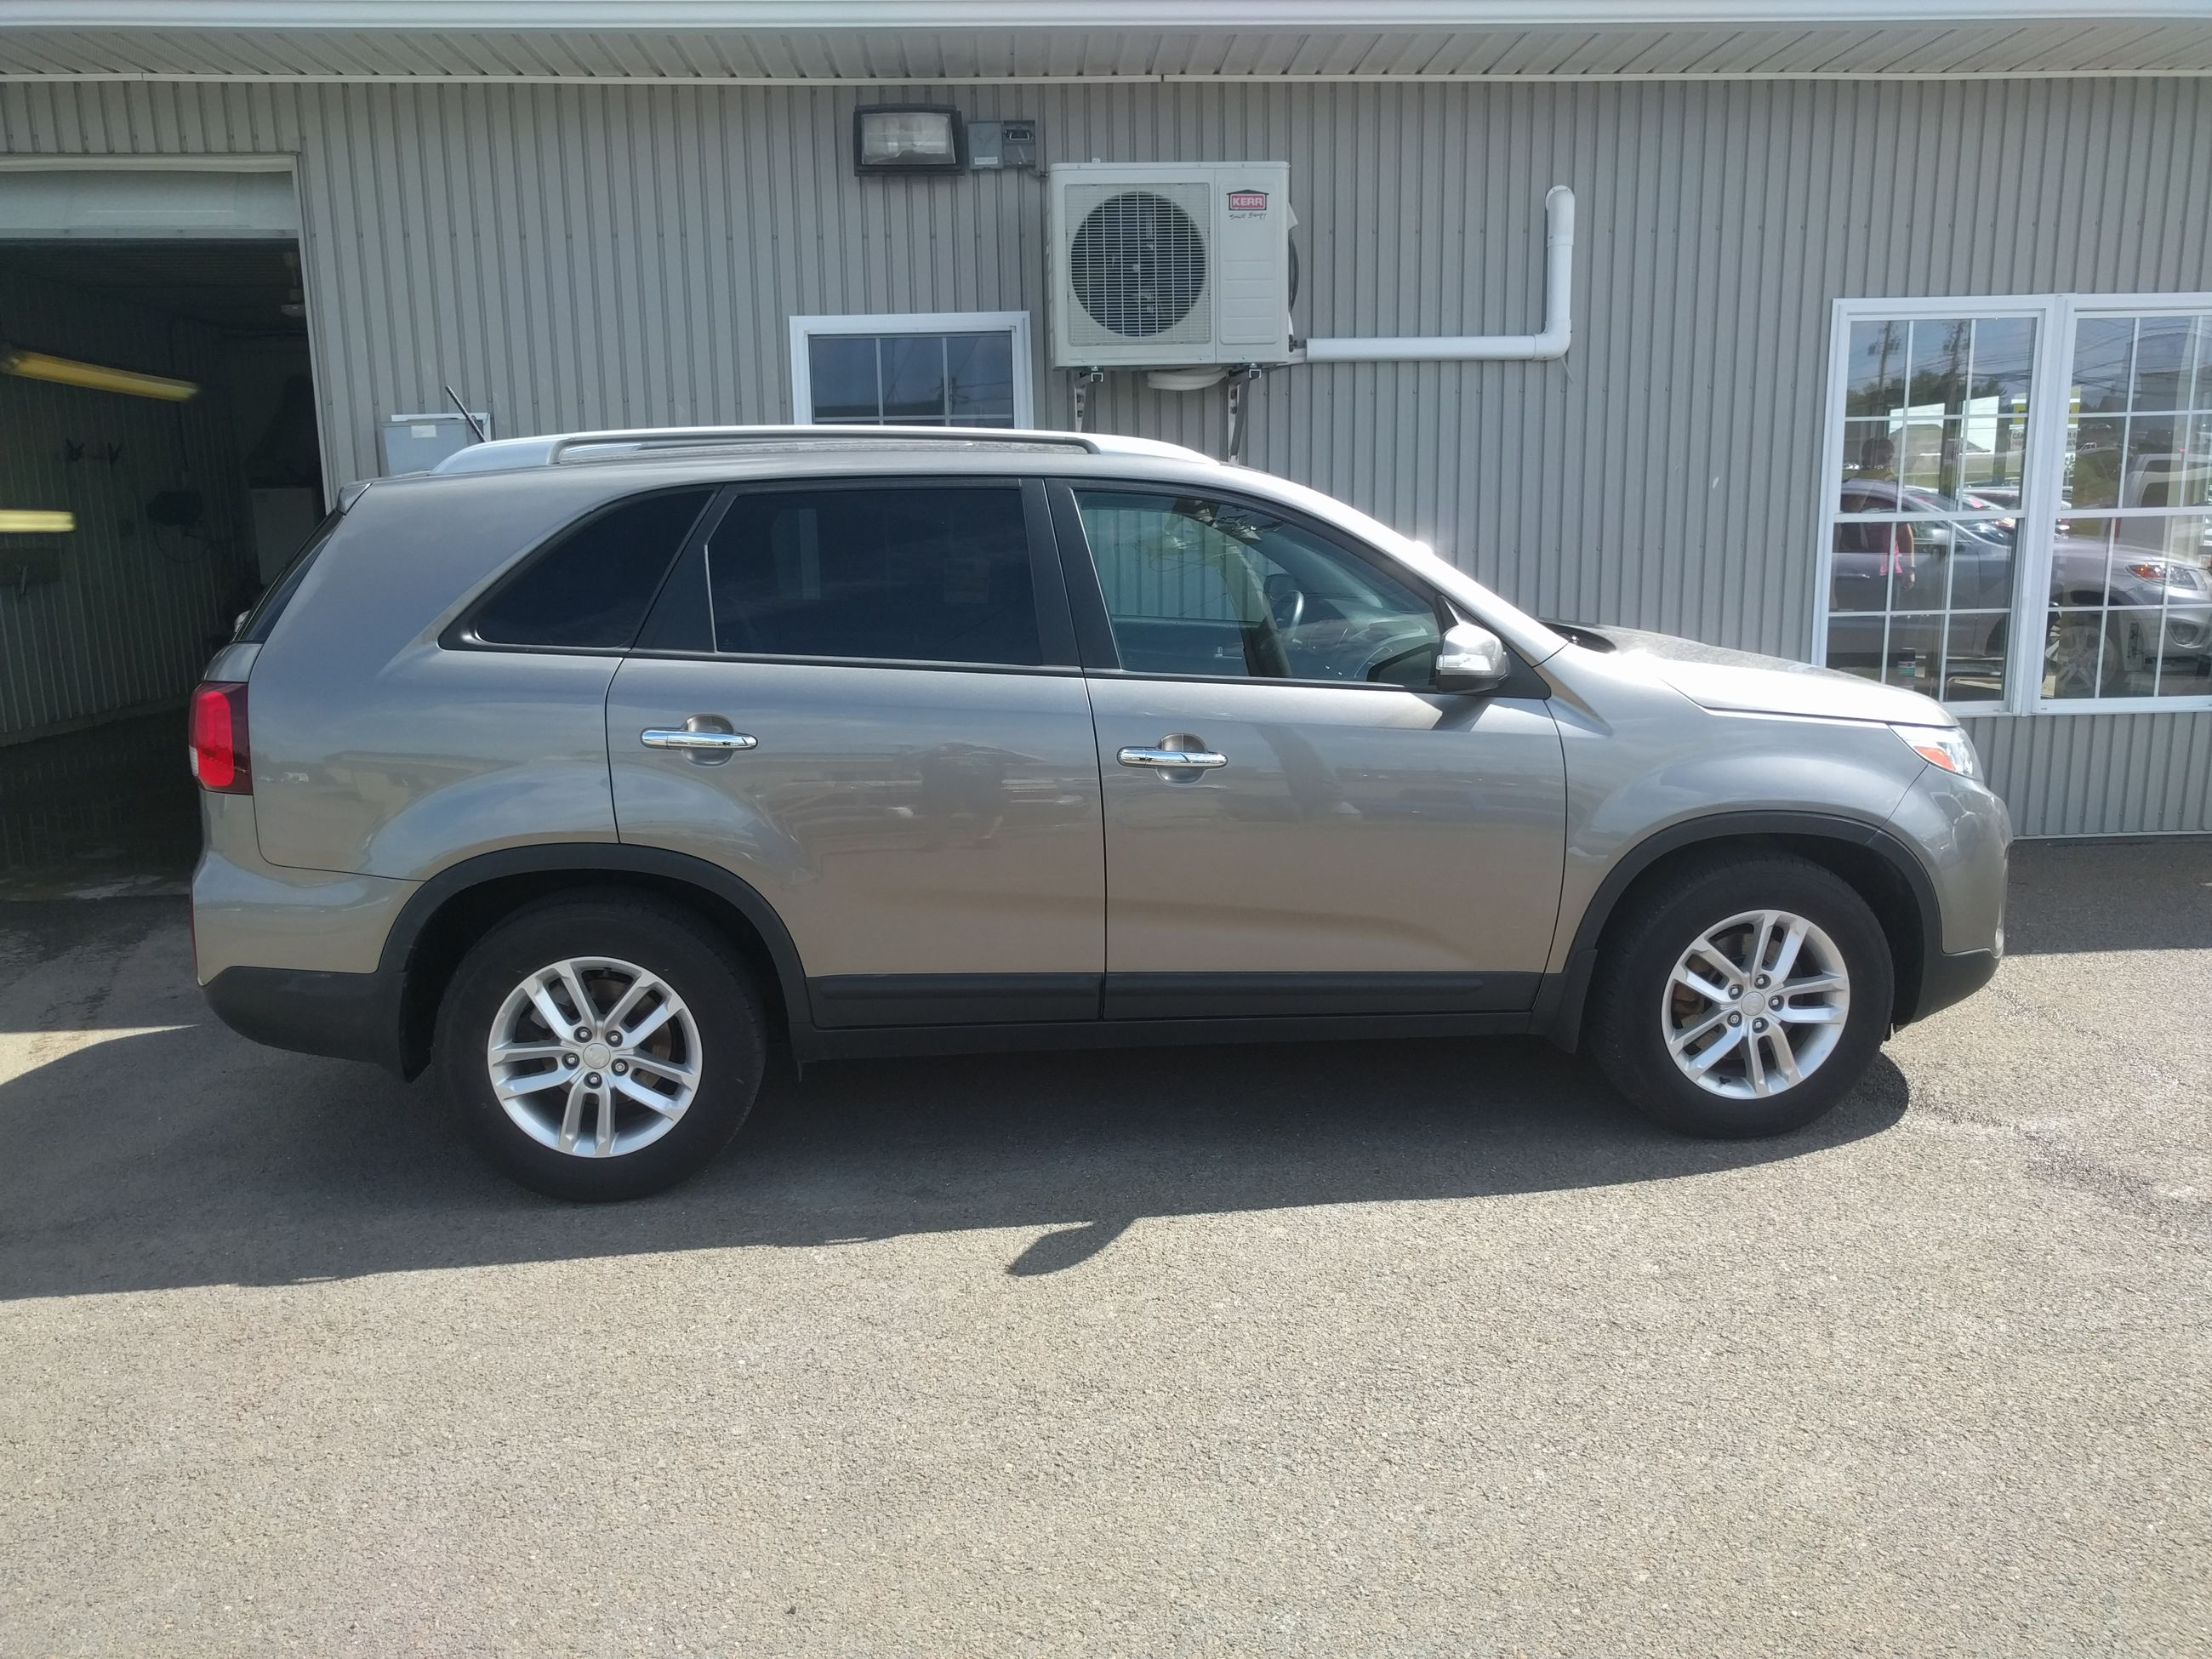 used 2014 kia sorento lx in fredericton used inventory maritime auto sales in fredericton. Black Bedroom Furniture Sets. Home Design Ideas